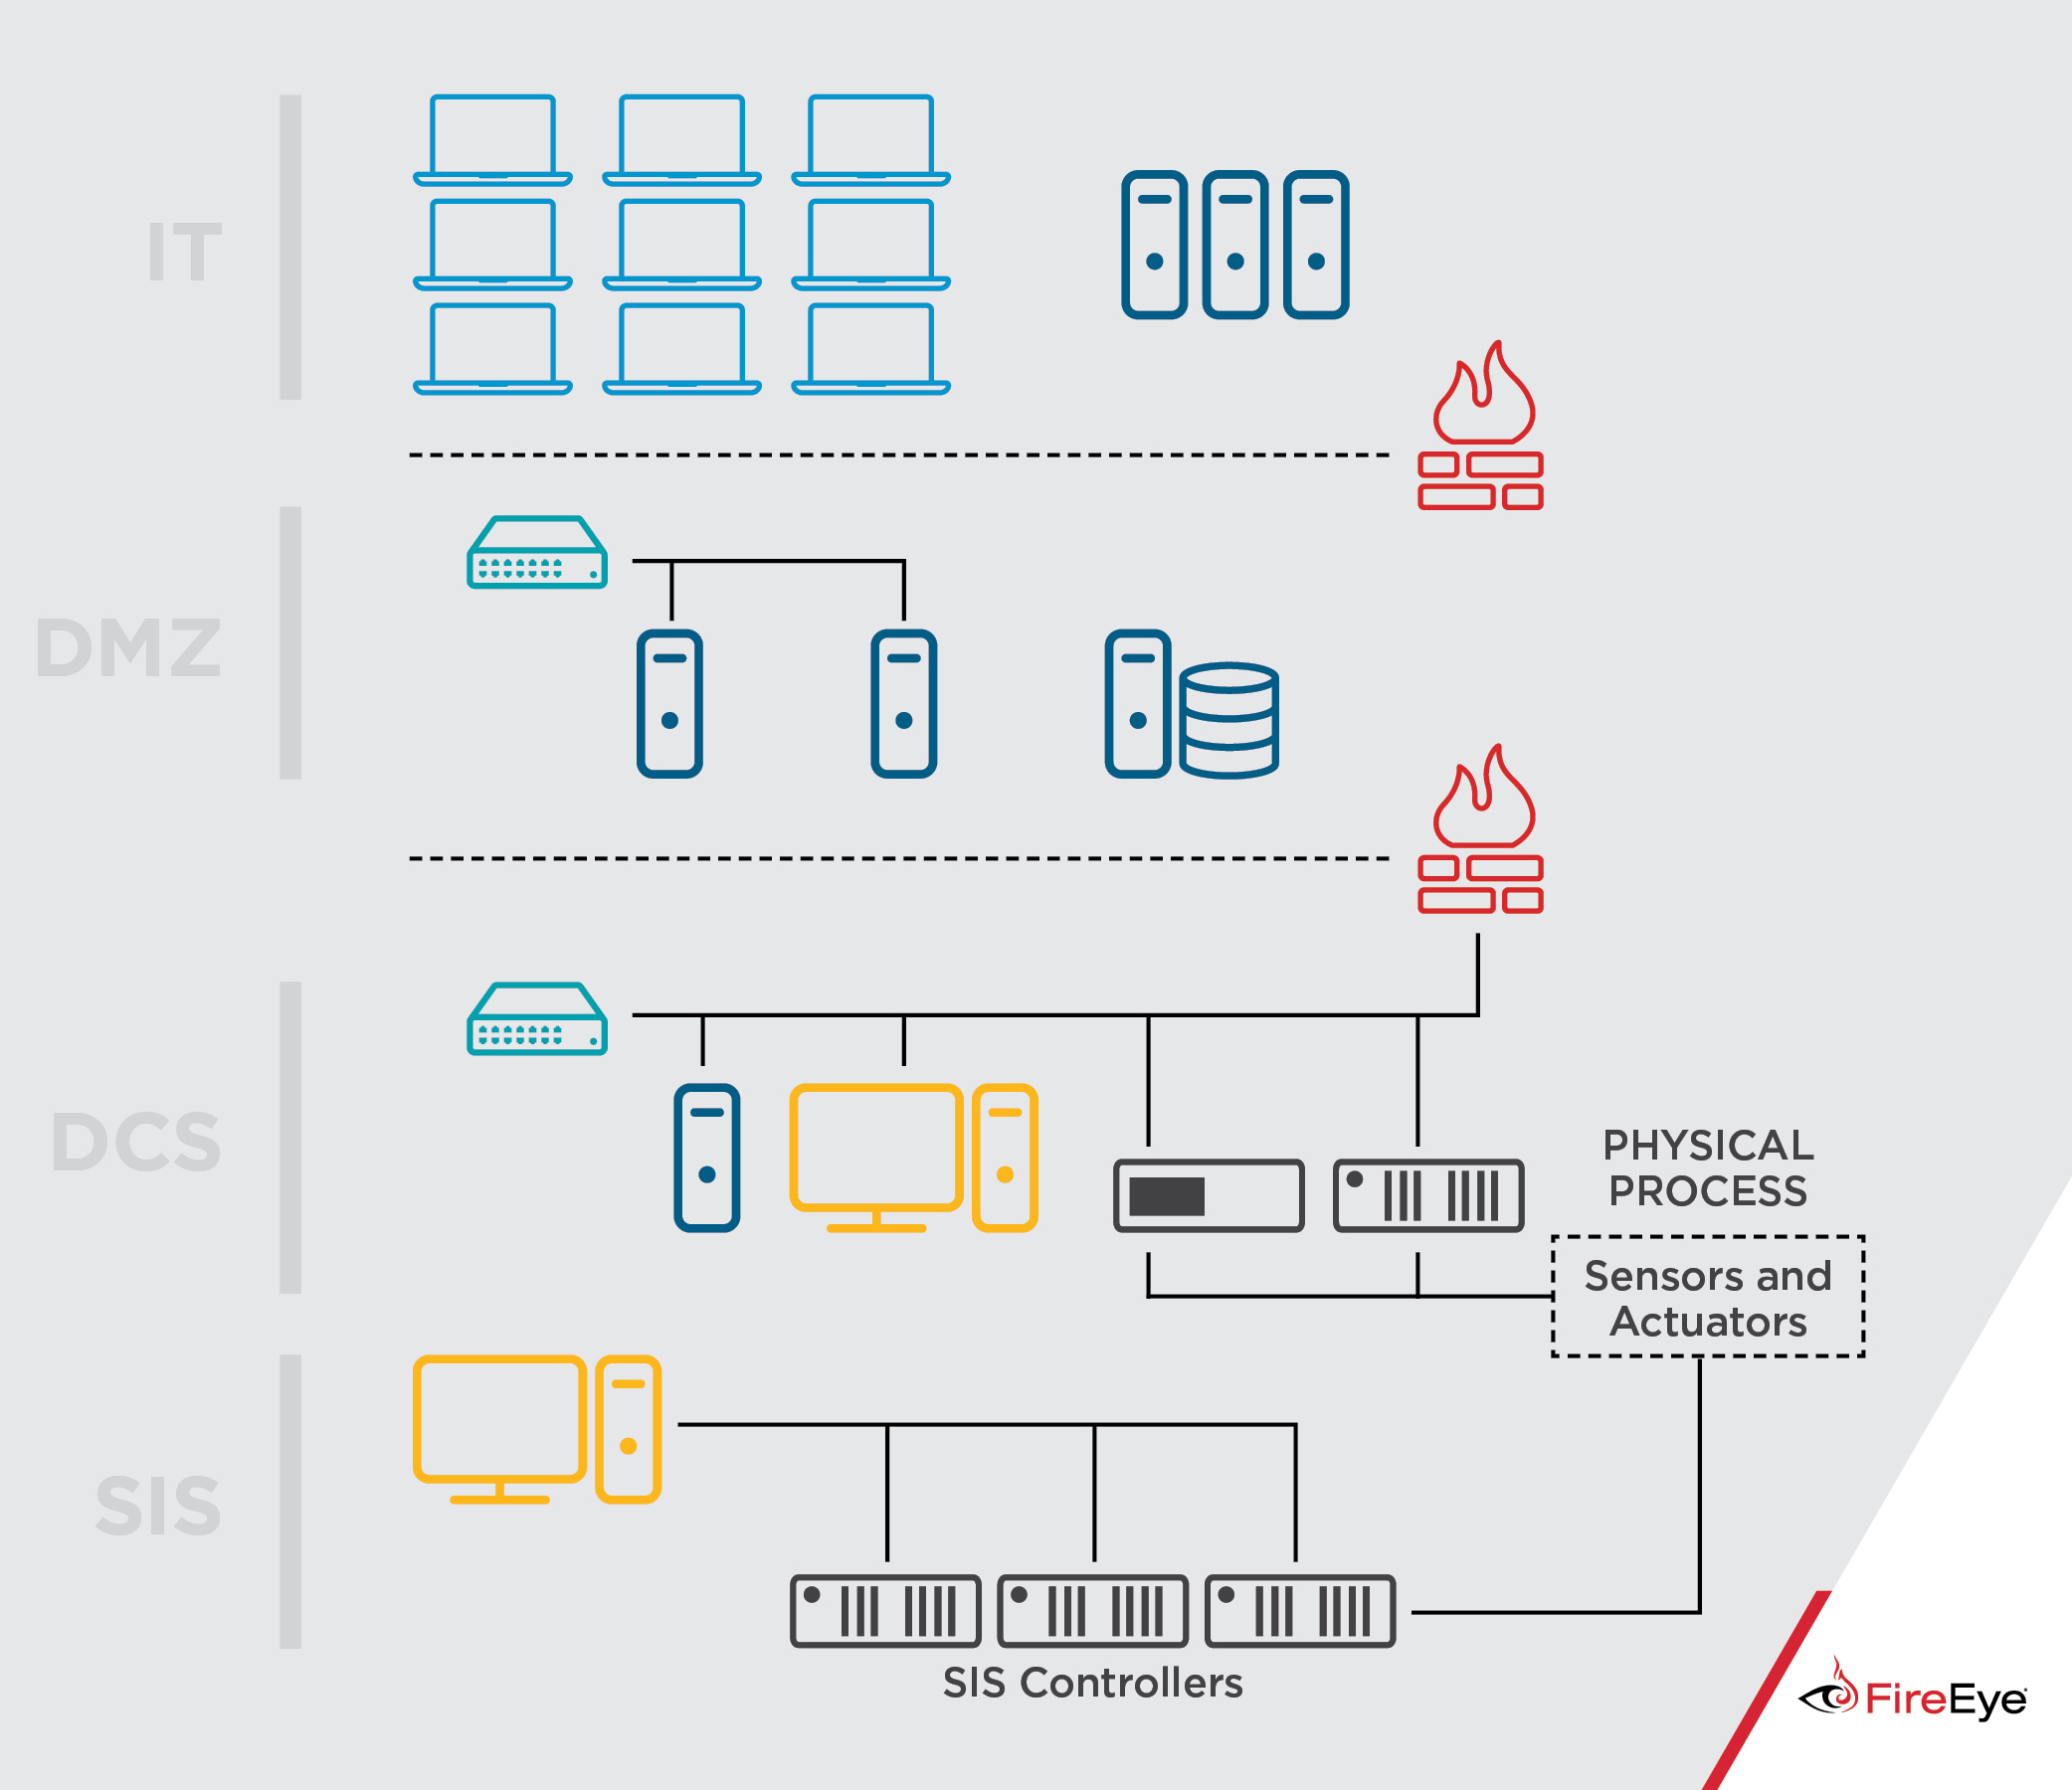 Attackers Deploy New Ics Attack Framework Triton And Cause Intrusion System Wiring Diagram Background On Process Control Safety Instrumented Systems